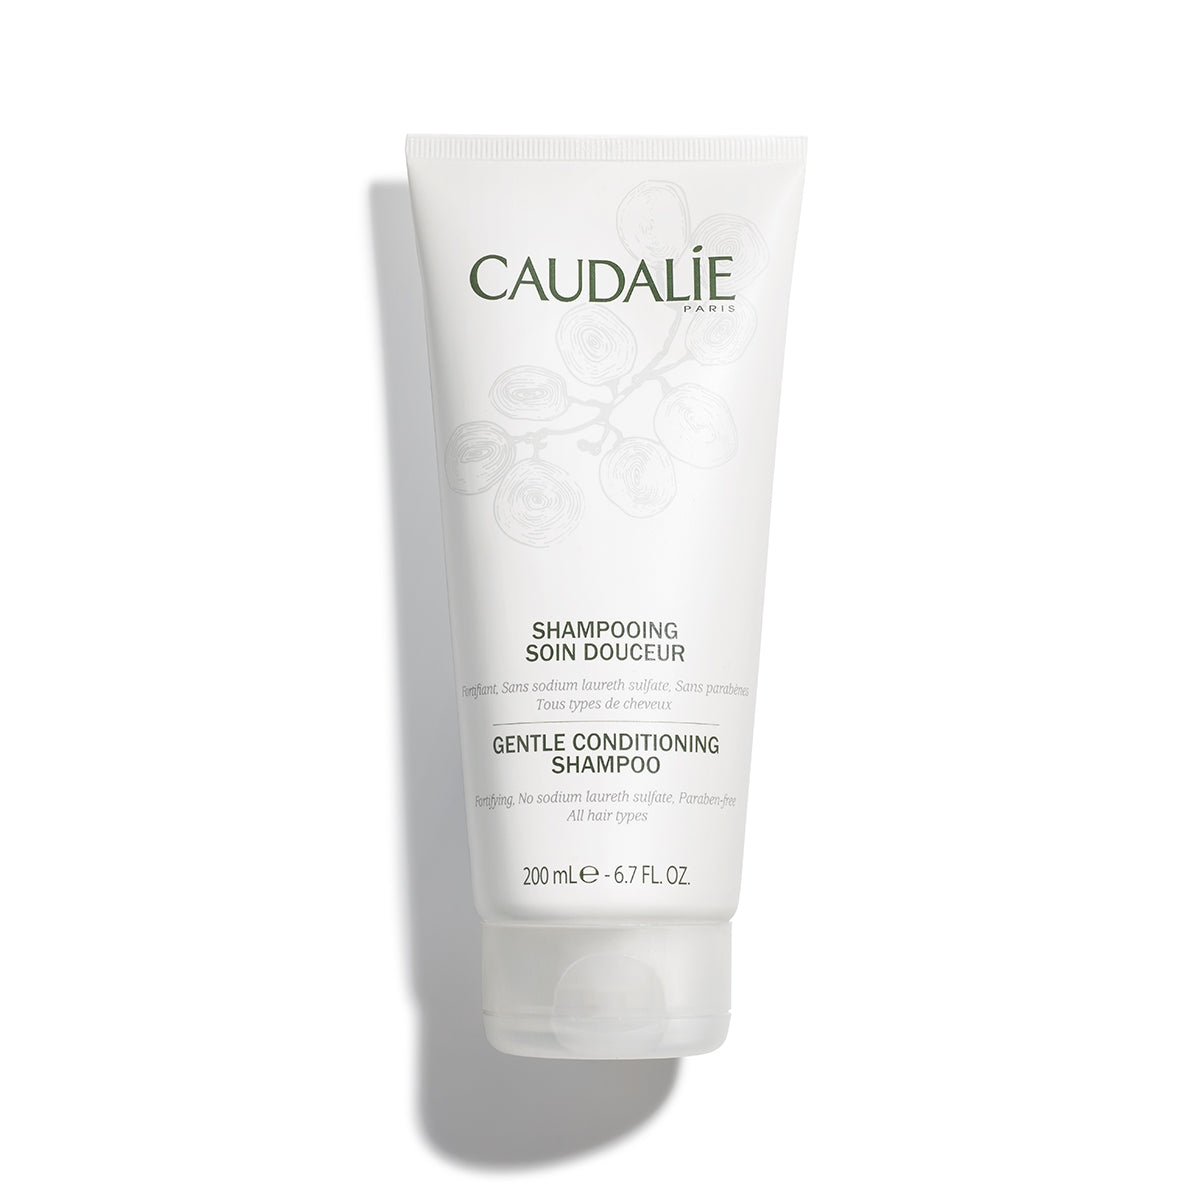 CAUDALIE Gentle conditioning shampoo 200ml